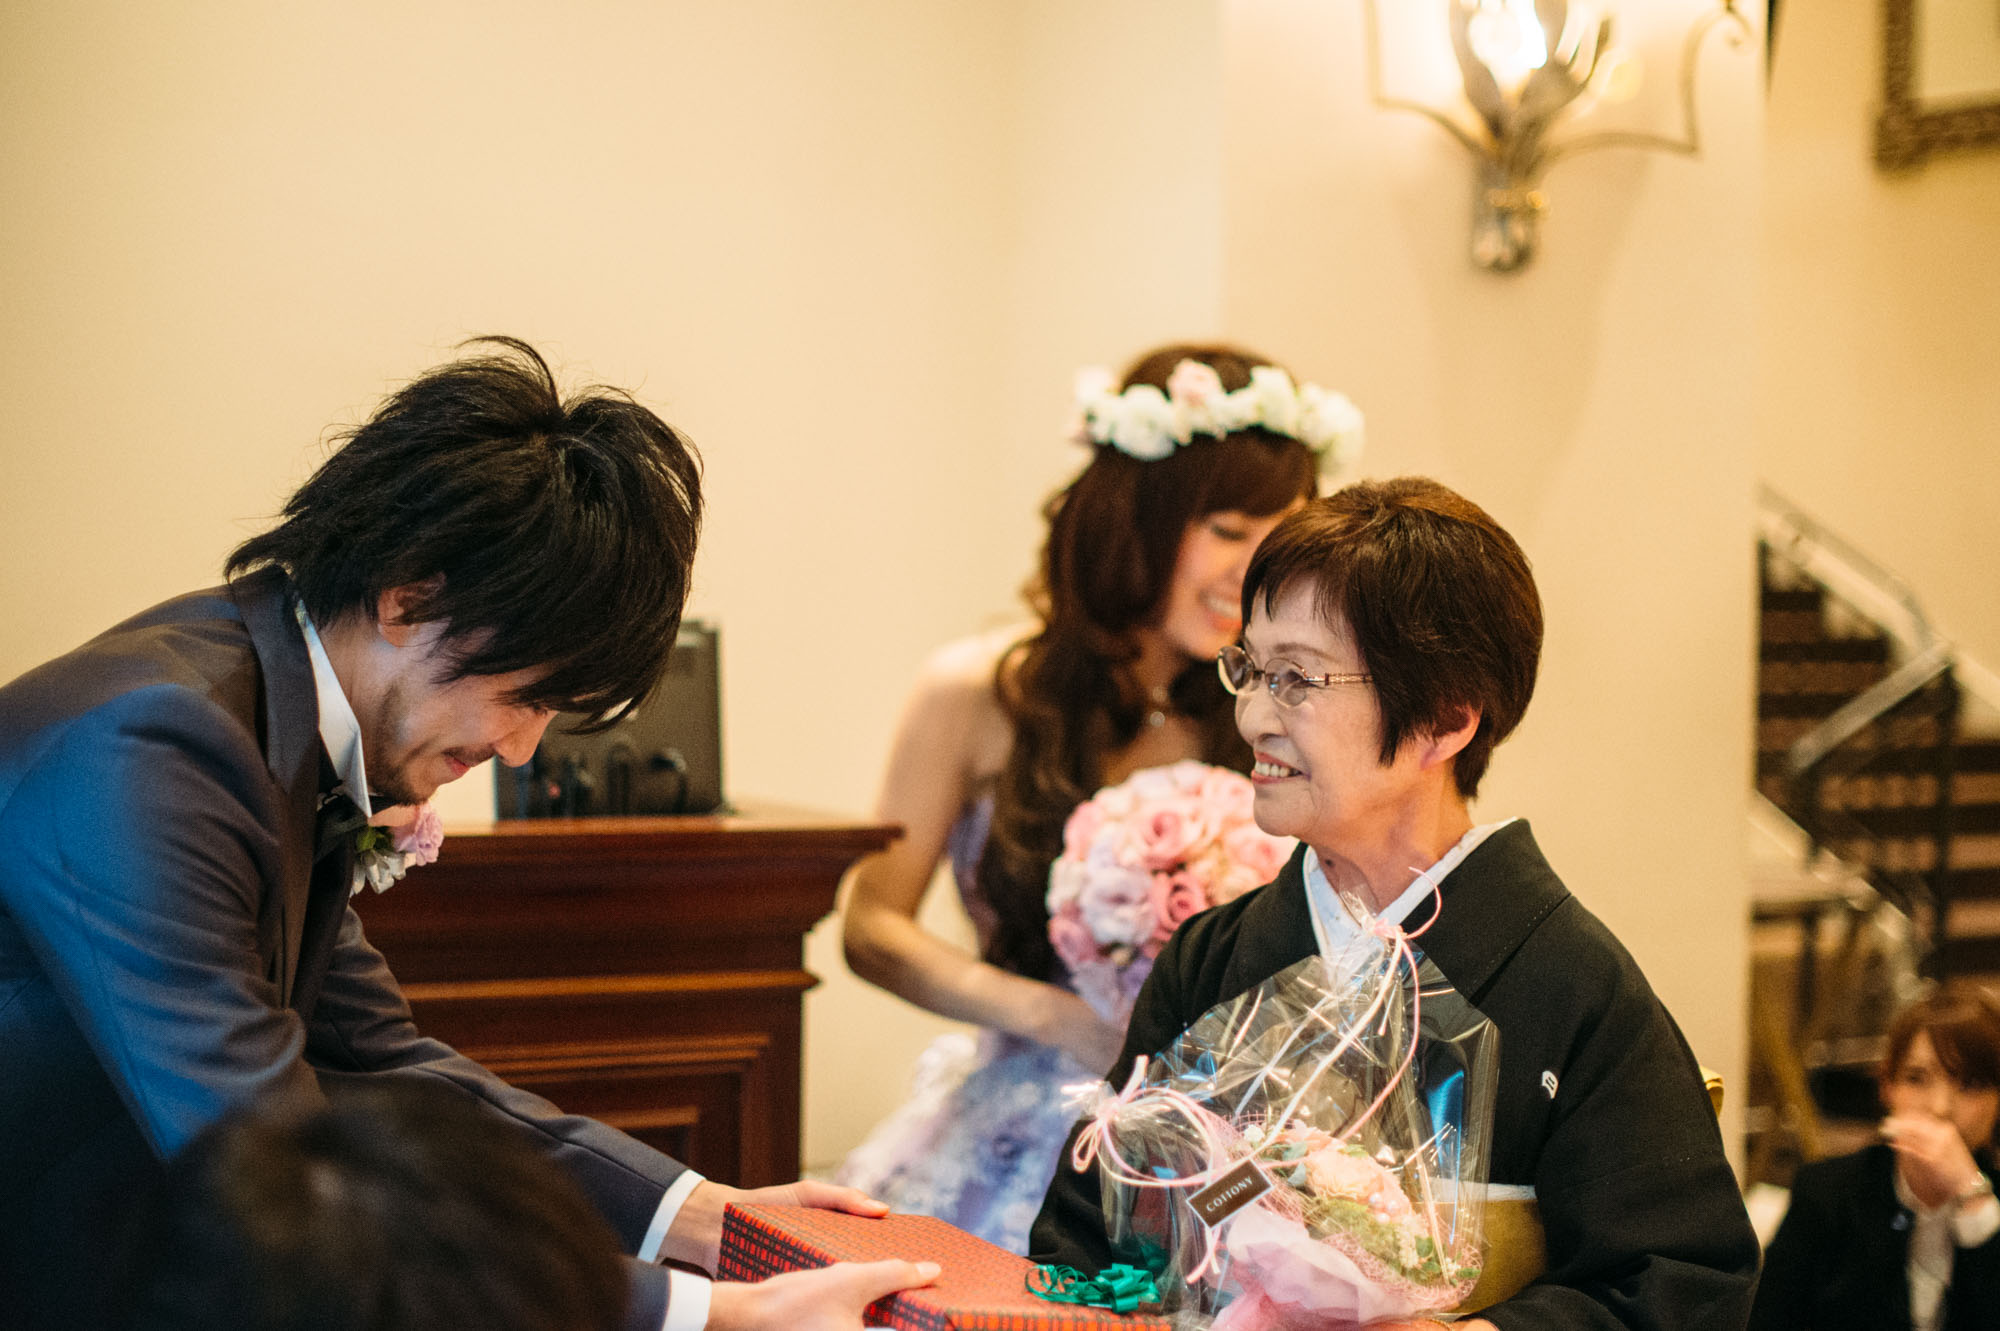 nagoya wedding115